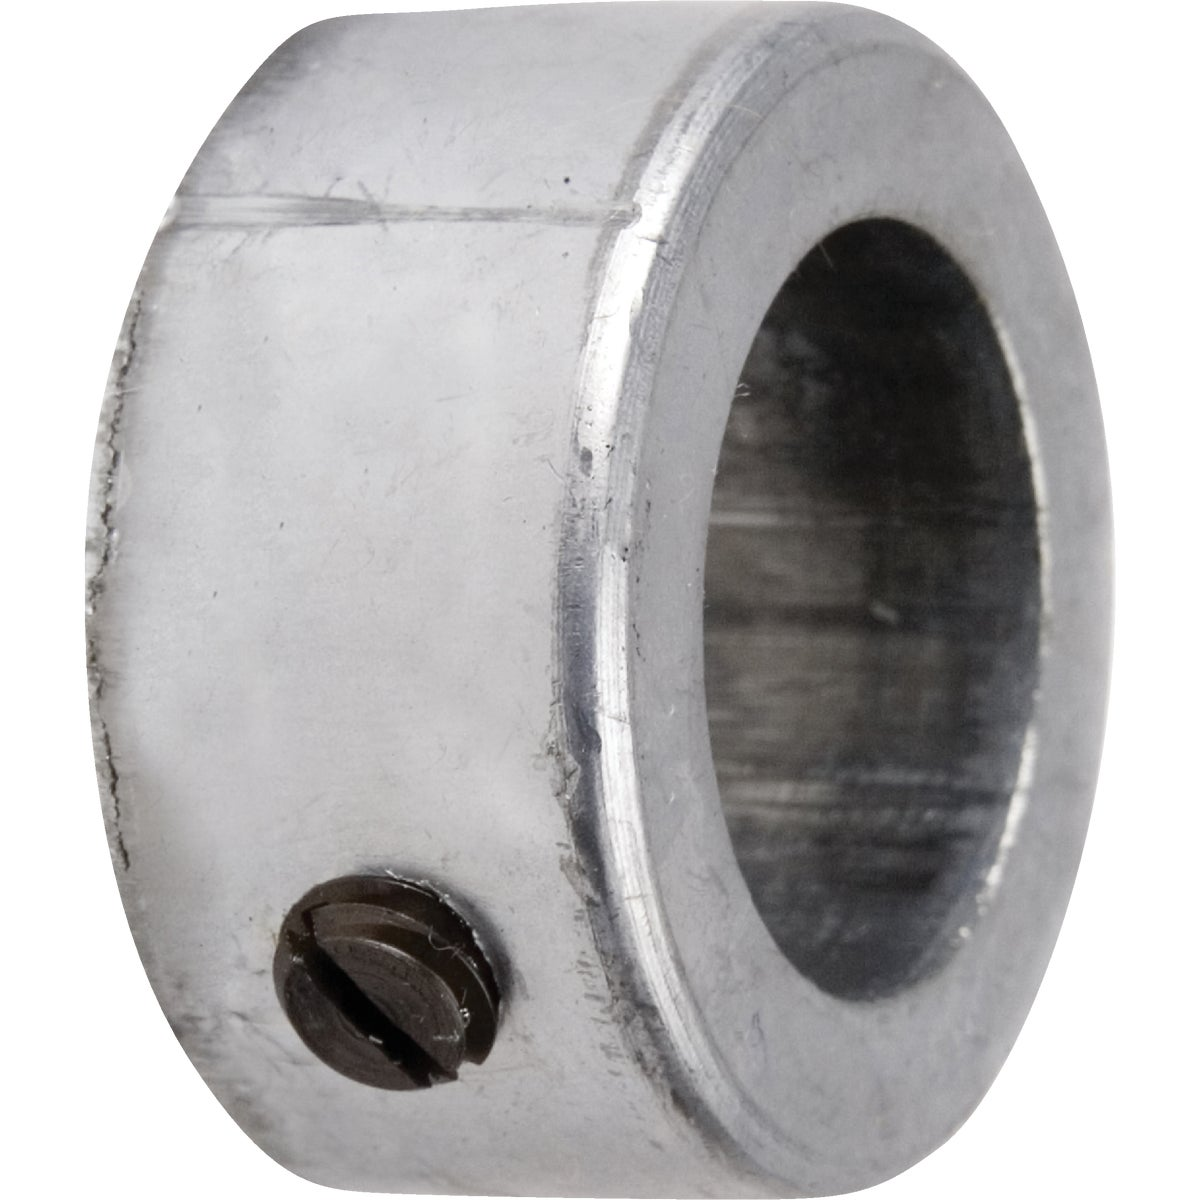 "3/4"" SHAFT COLLAR - 3012 by Chicago Die Casting"